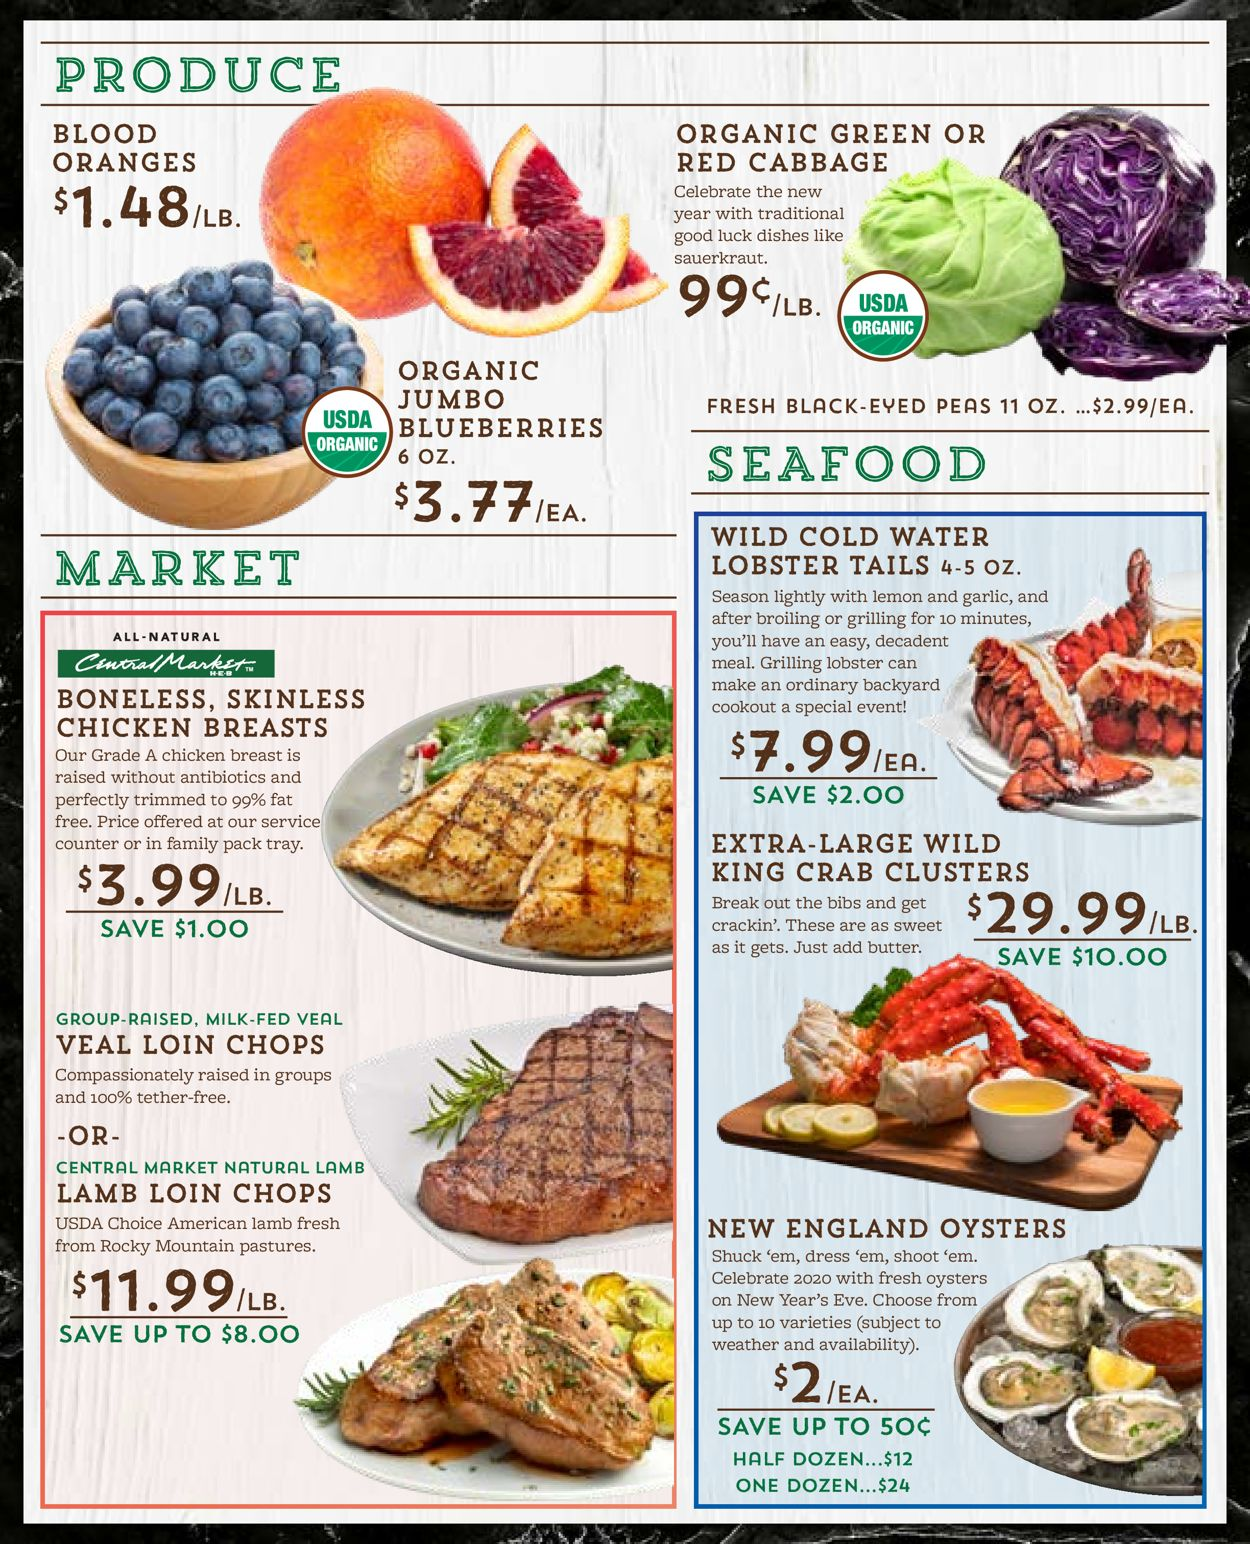 Catalogue Central Market - New Year's Ad 2019/2020 from 12/26/2019